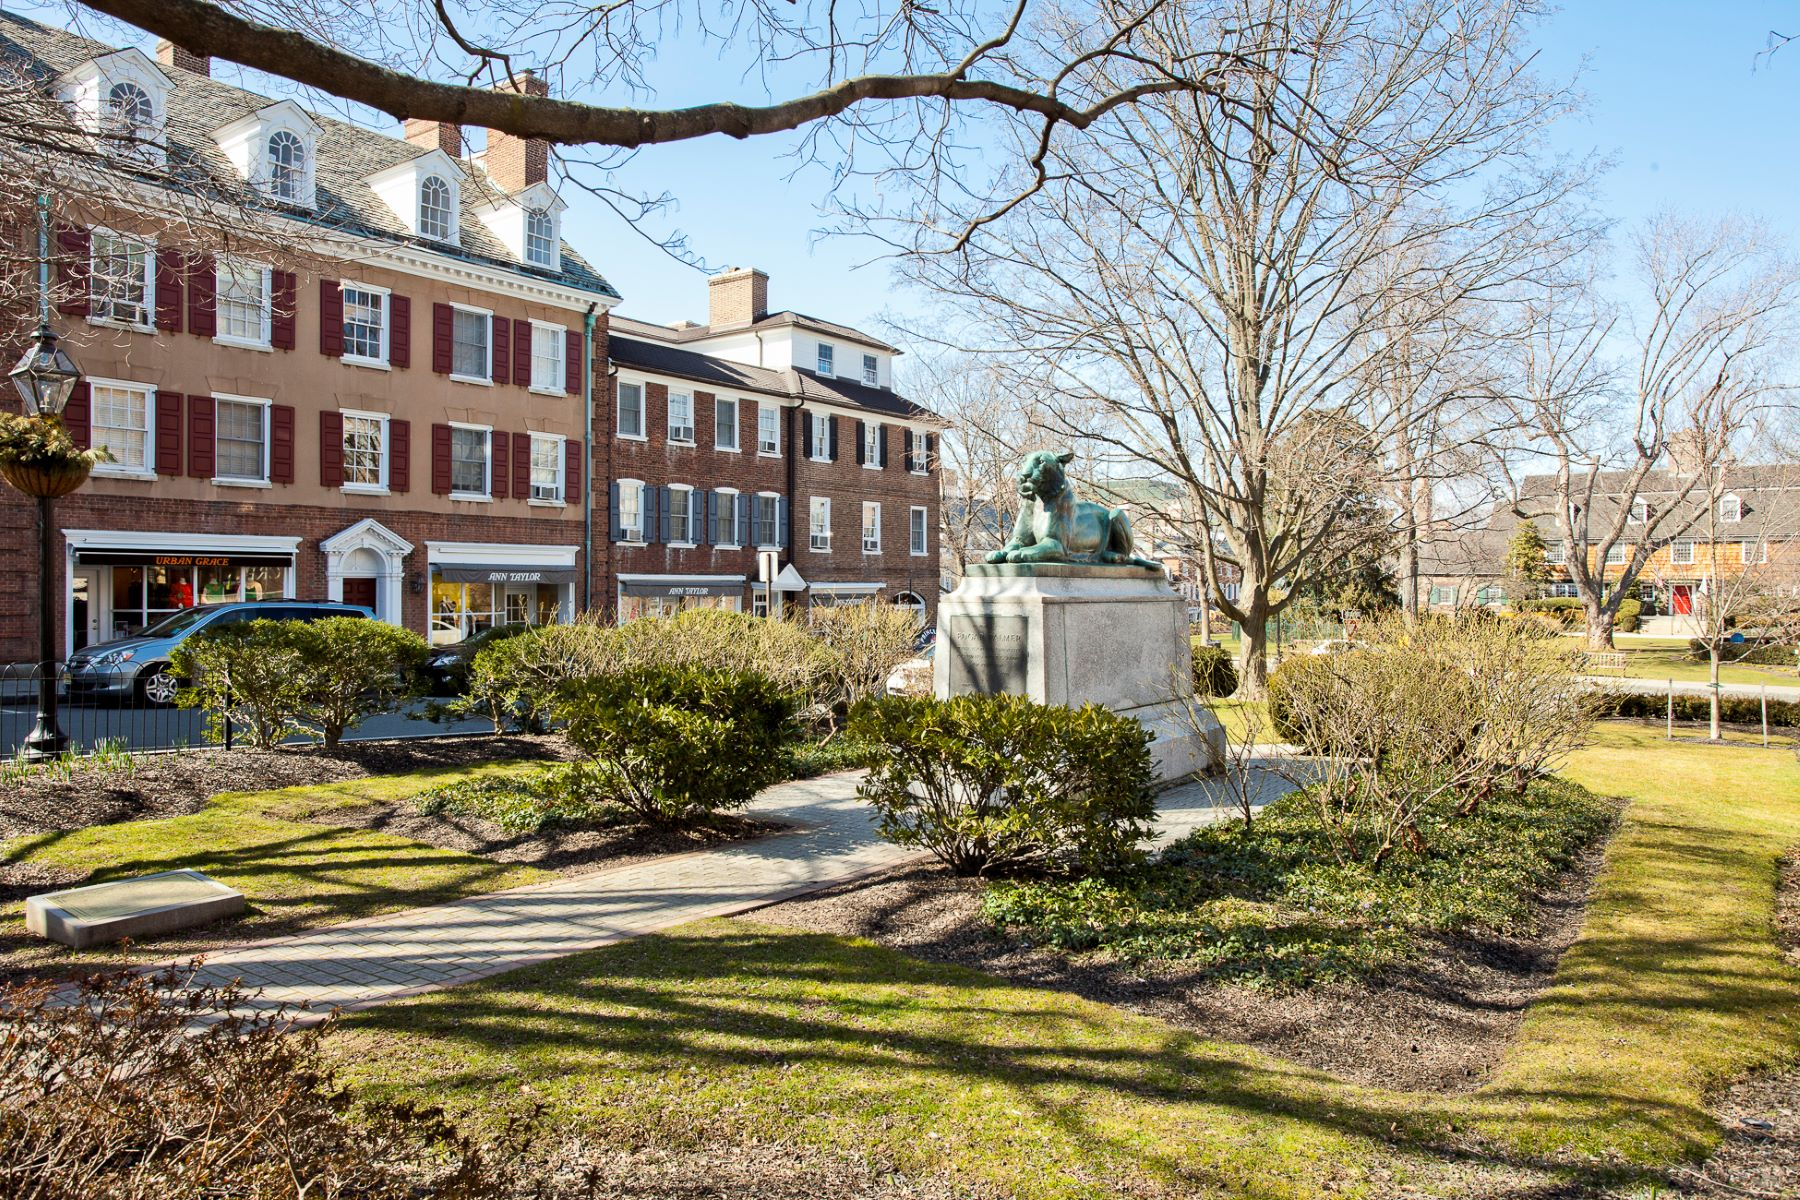 Additional photo for property listing at Welcome to 30 Maclean! 30 Maclean Street Unit 10, Princeton, New Jersey 08542 United States